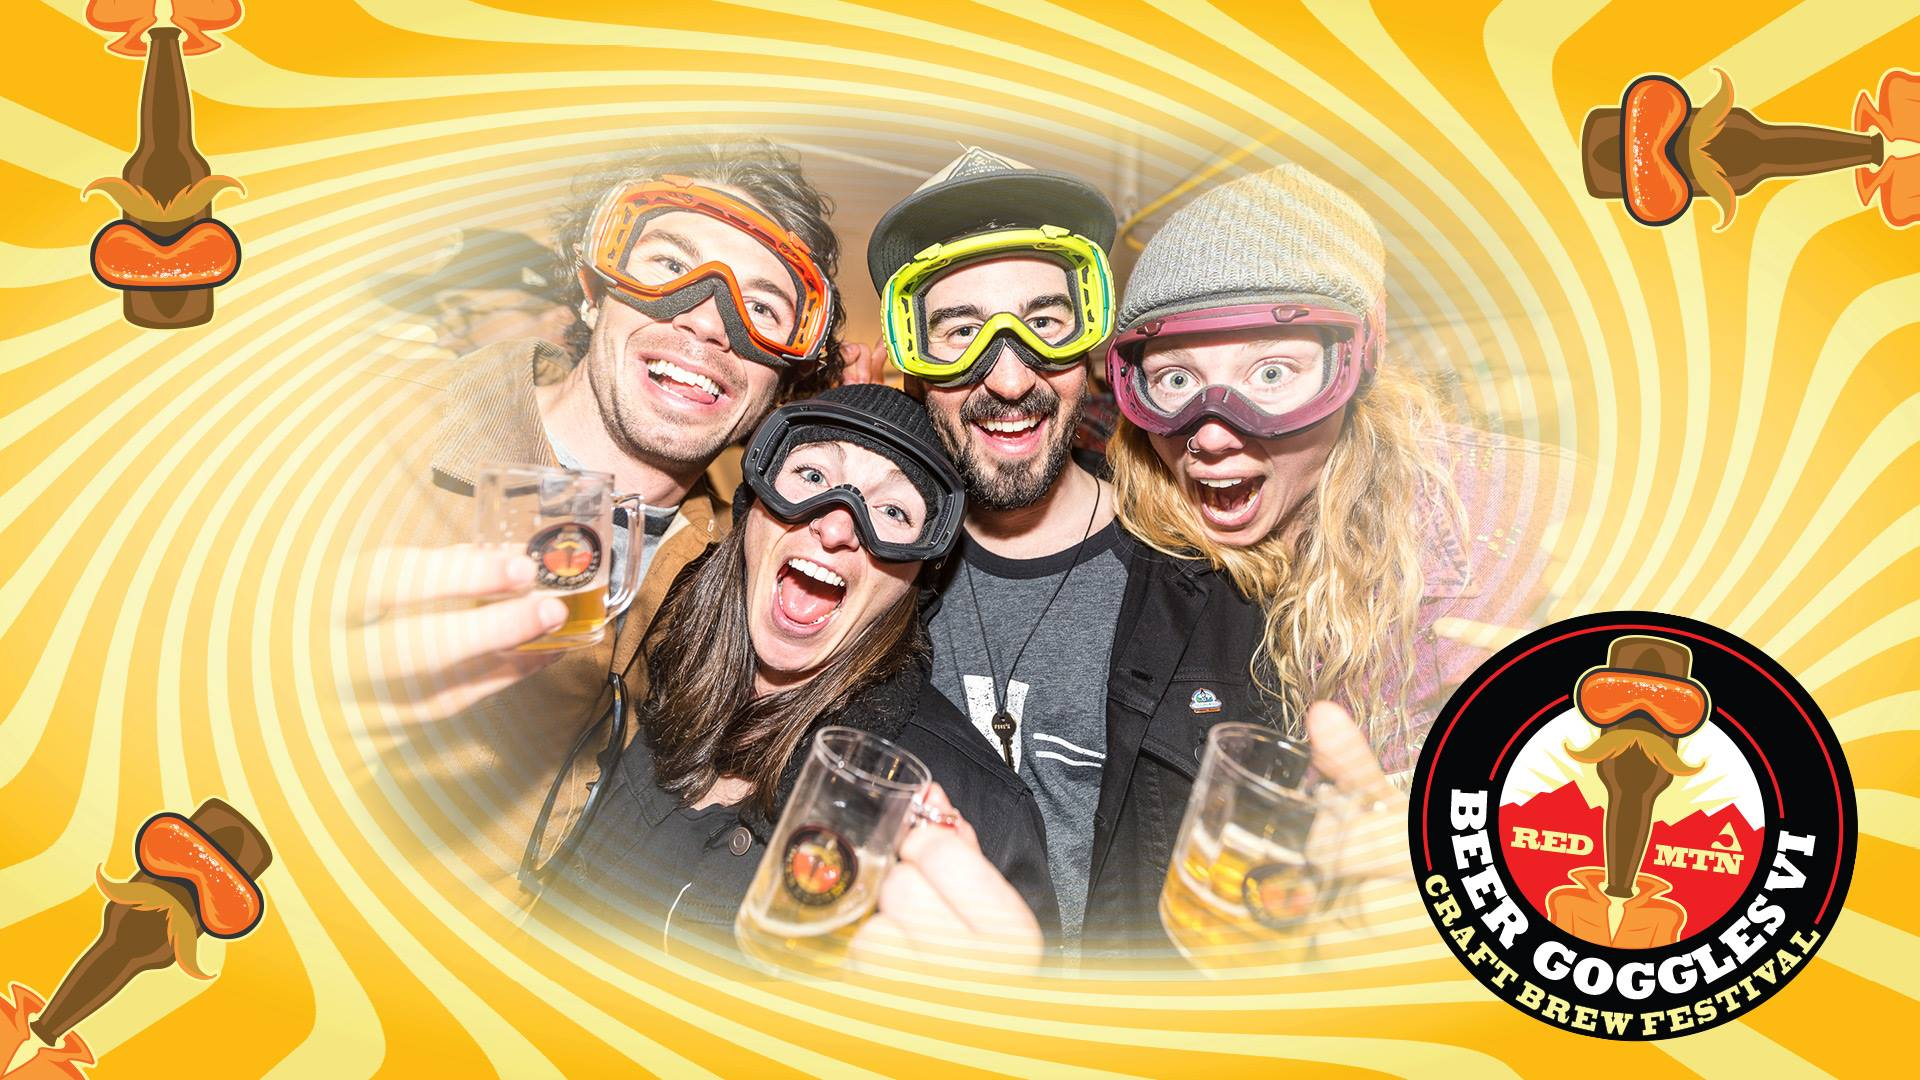 2019 6th Annual Beer Goggles Craft Brew Fest